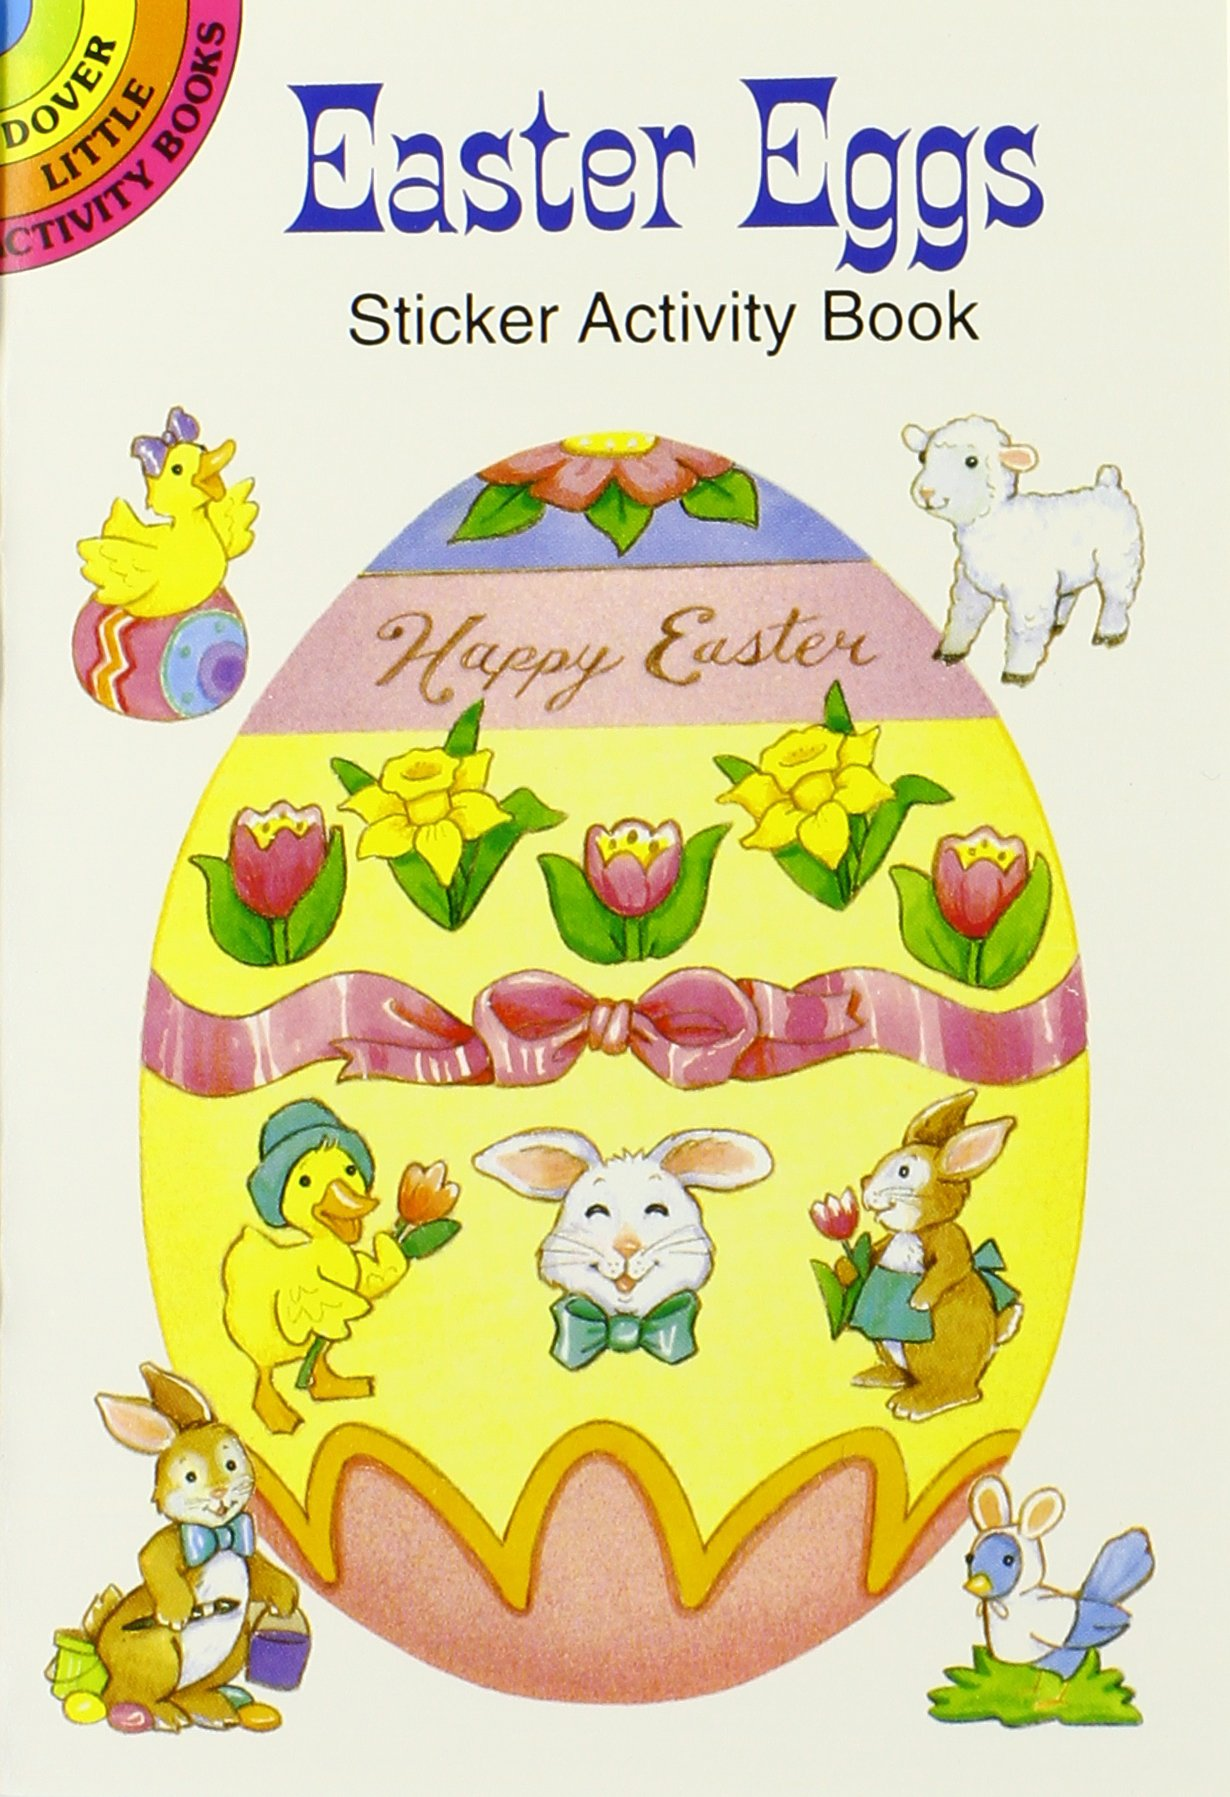 10 Easter Fun Books: Stickers, Stencils, Tattoos and More (Dover Little Activity Books)